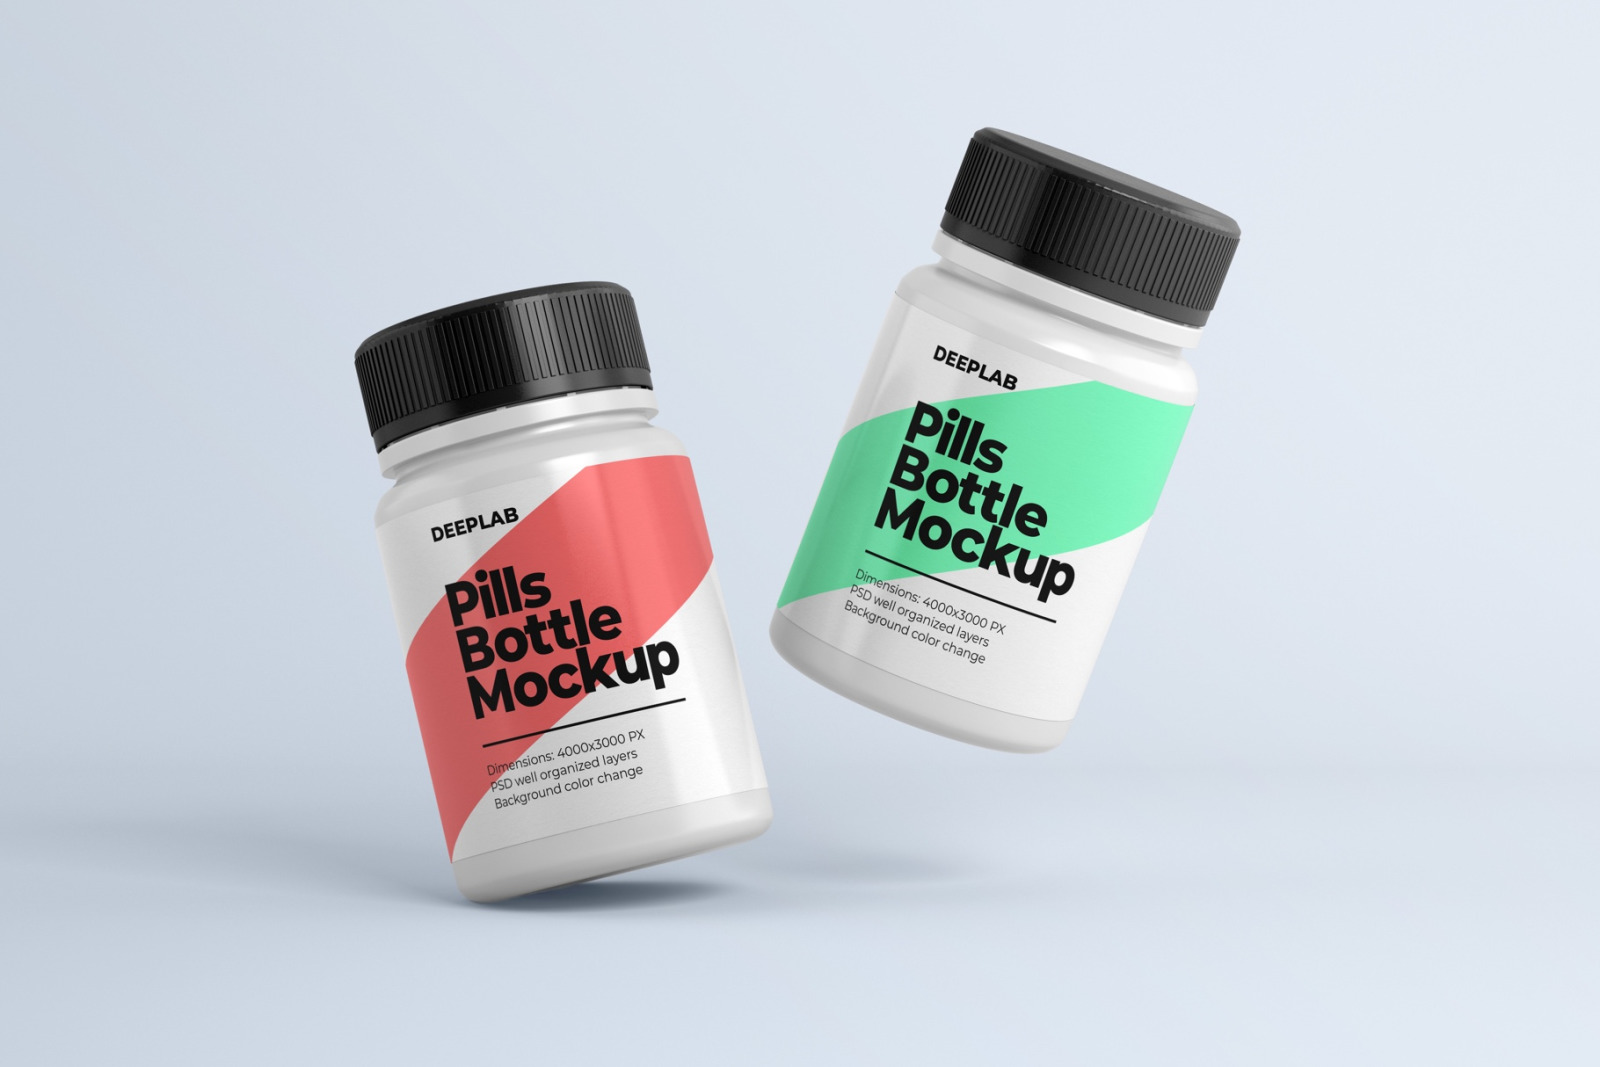 Pill bottle premium mockup set